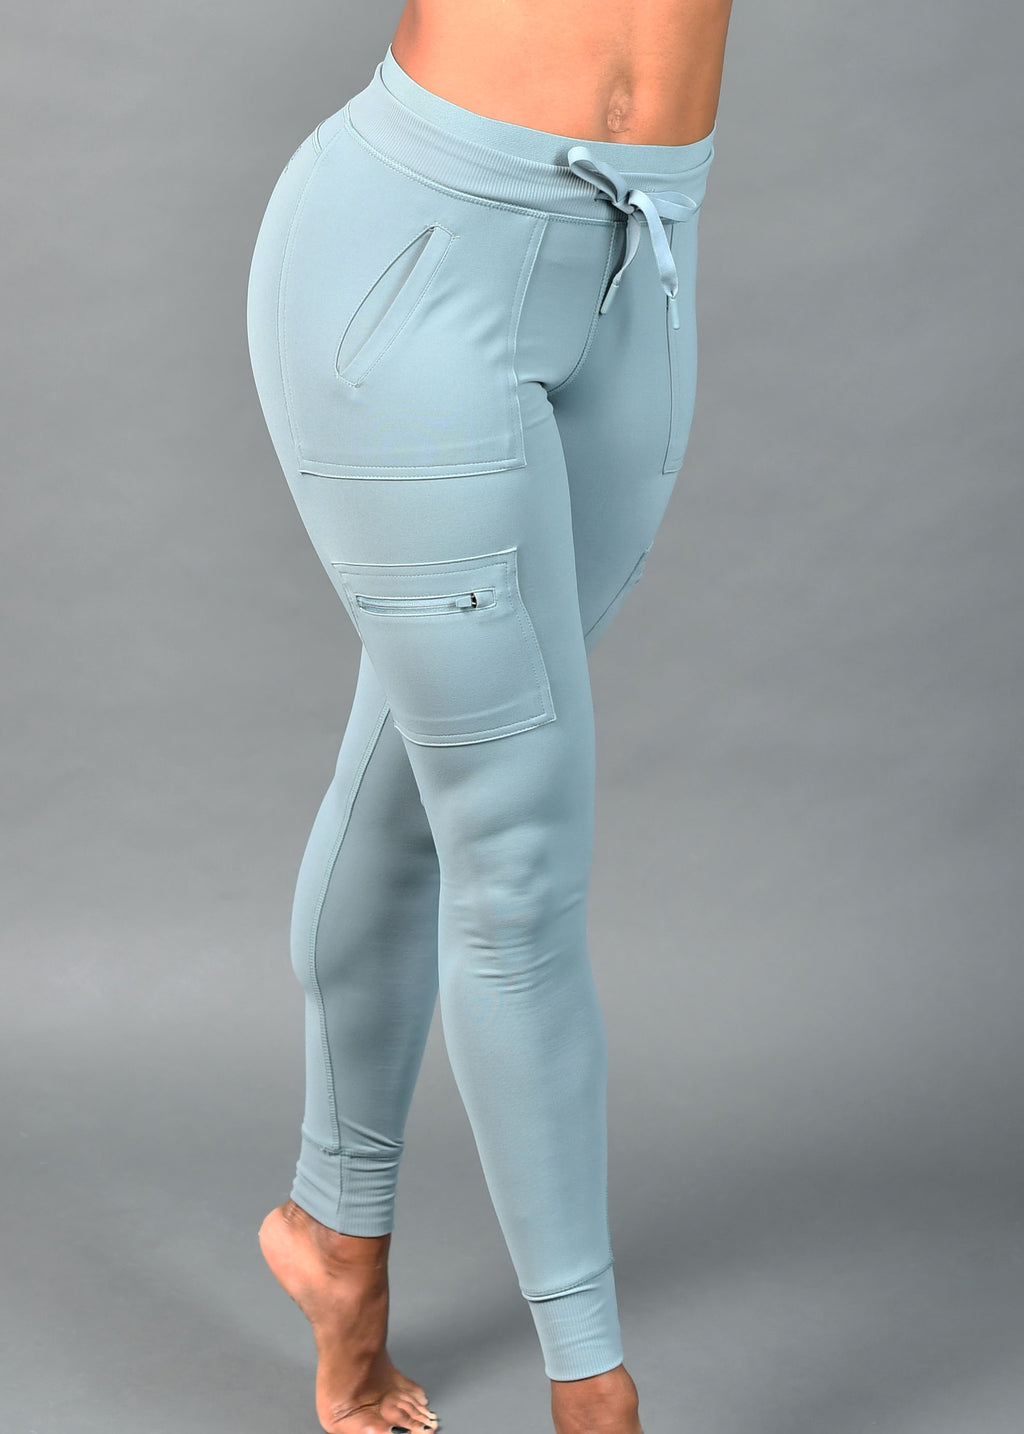 Powder Blue Cargo Leggings